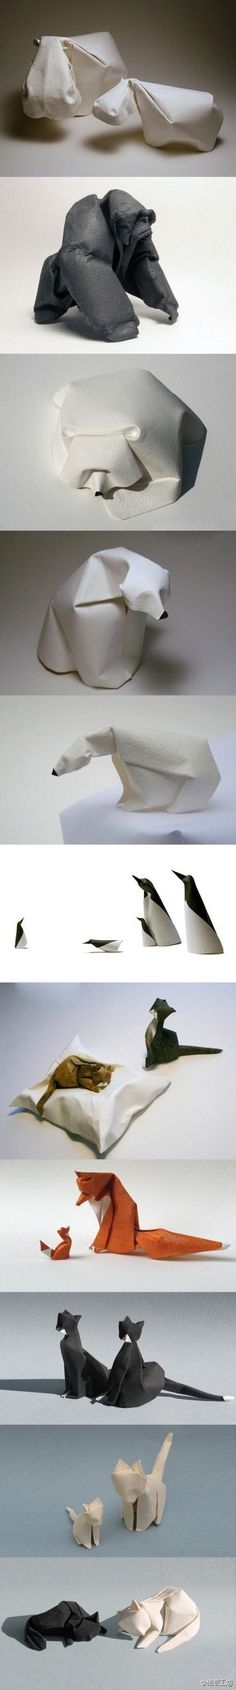 Origami Zoo by Dinh Truong Giang #Origami #Animals